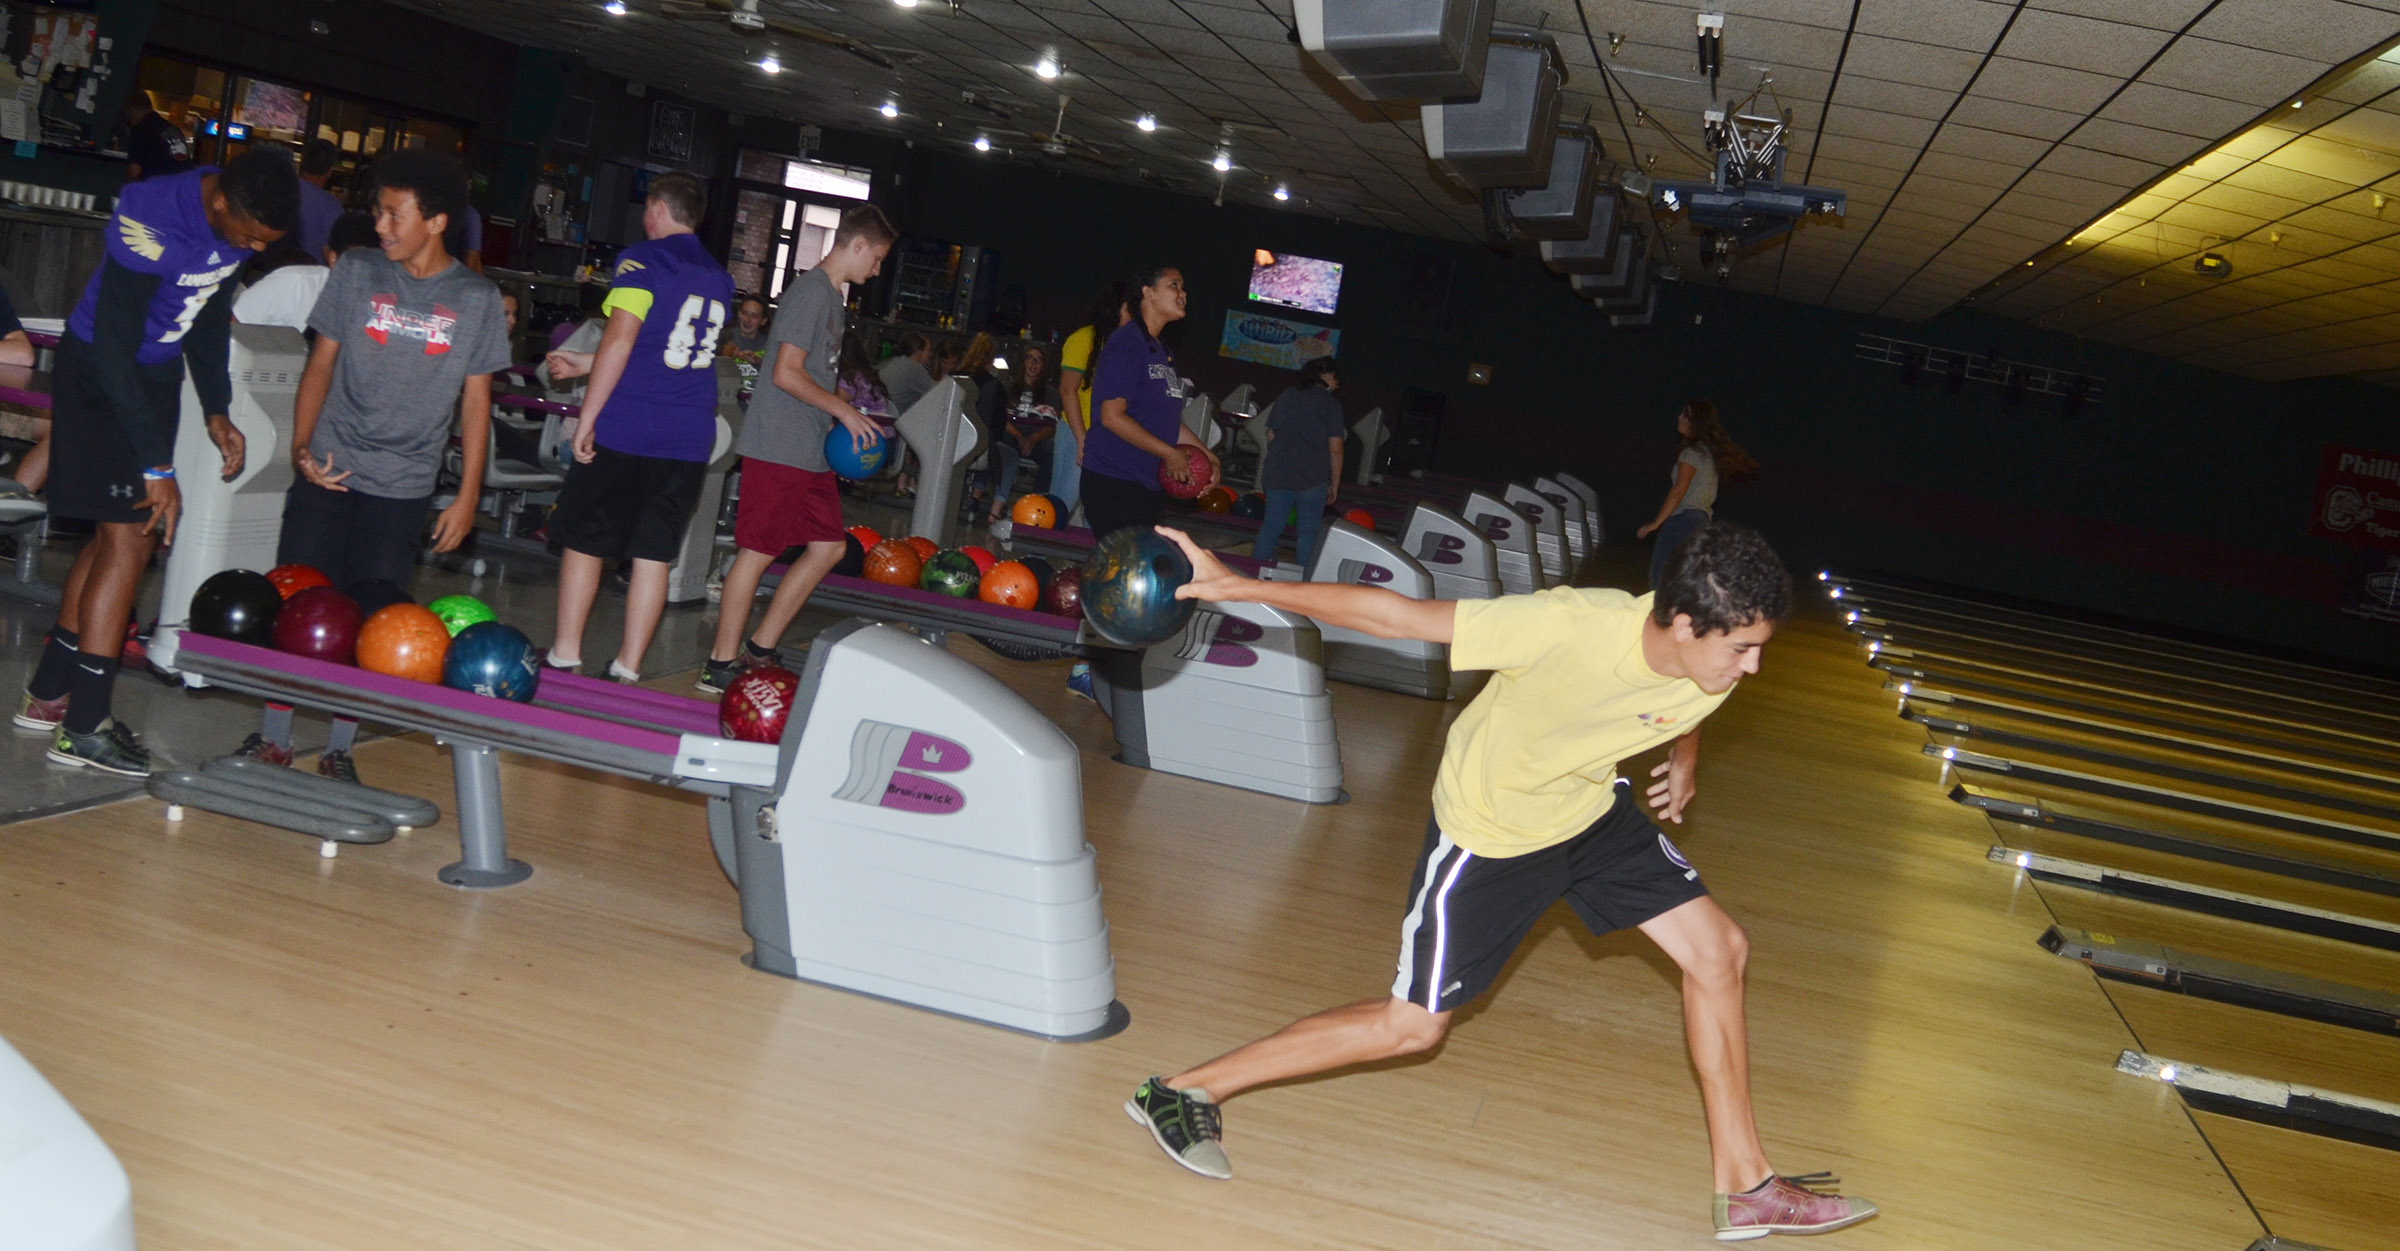 CHS freshman Kameron Smith bowls with his classmates.